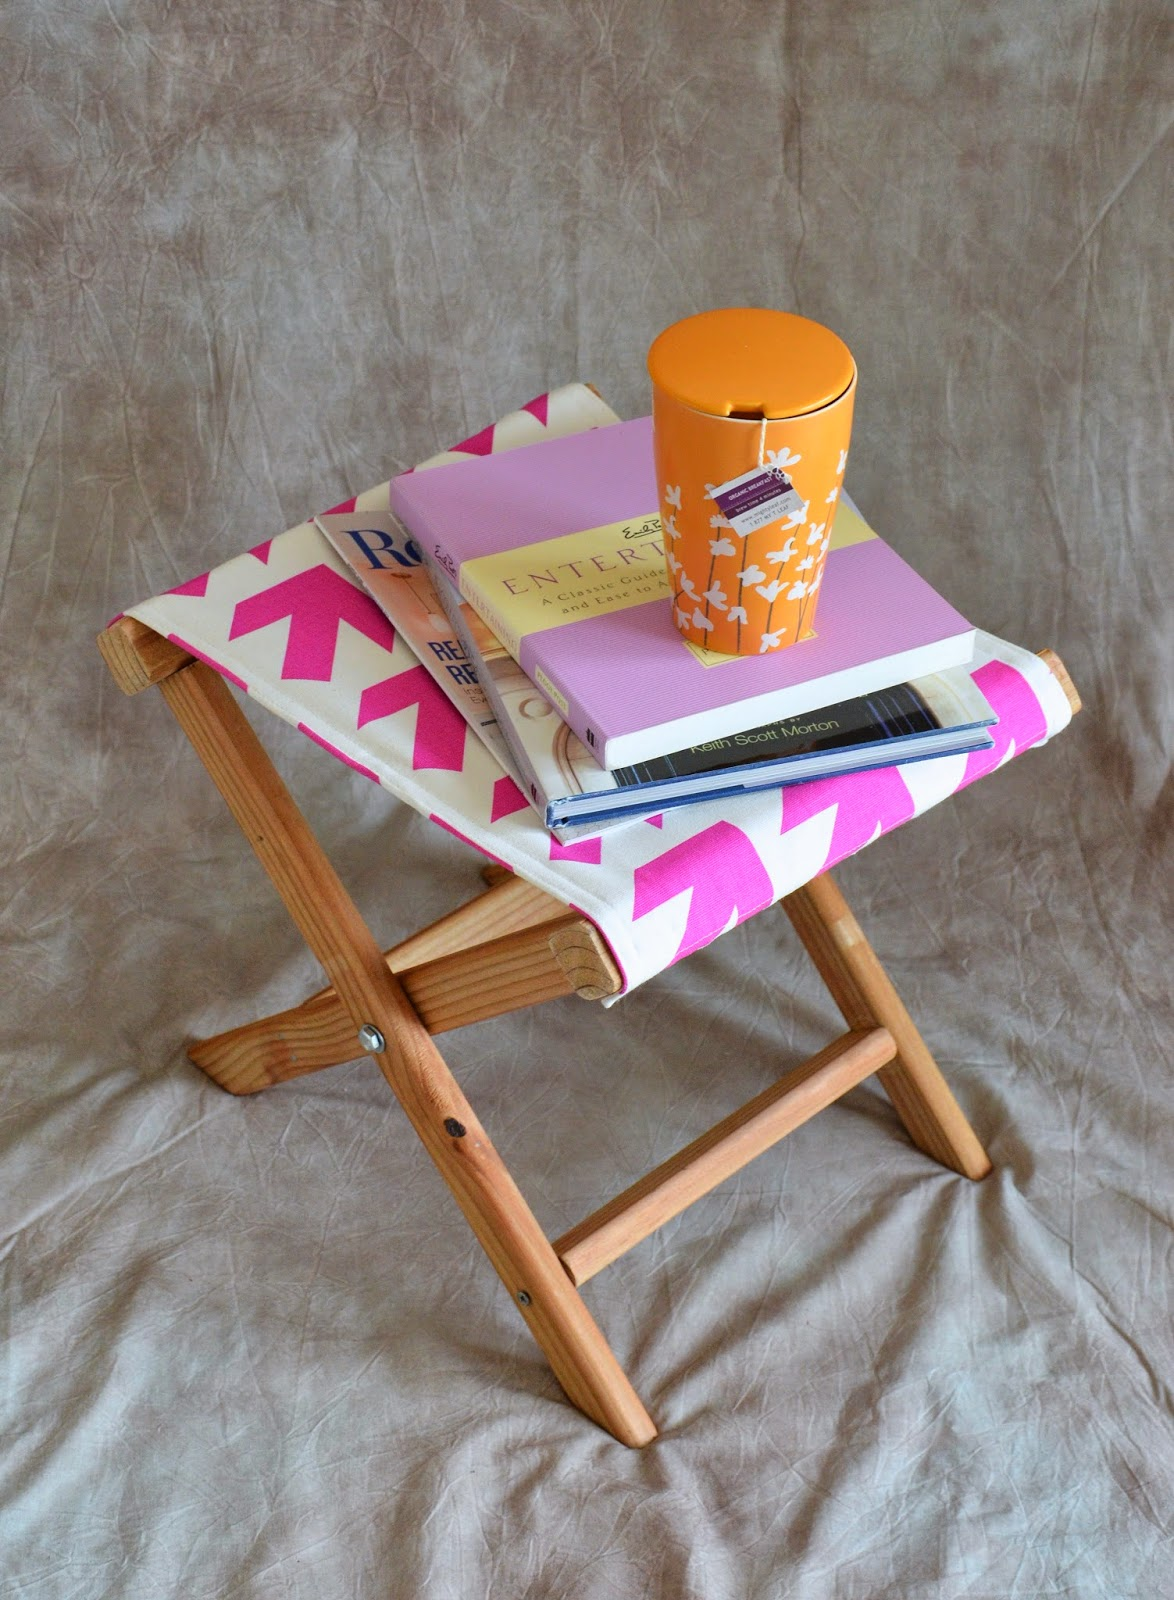 Folding Camp Stool | Homemade Christmas Gifts Men Will Actually Love